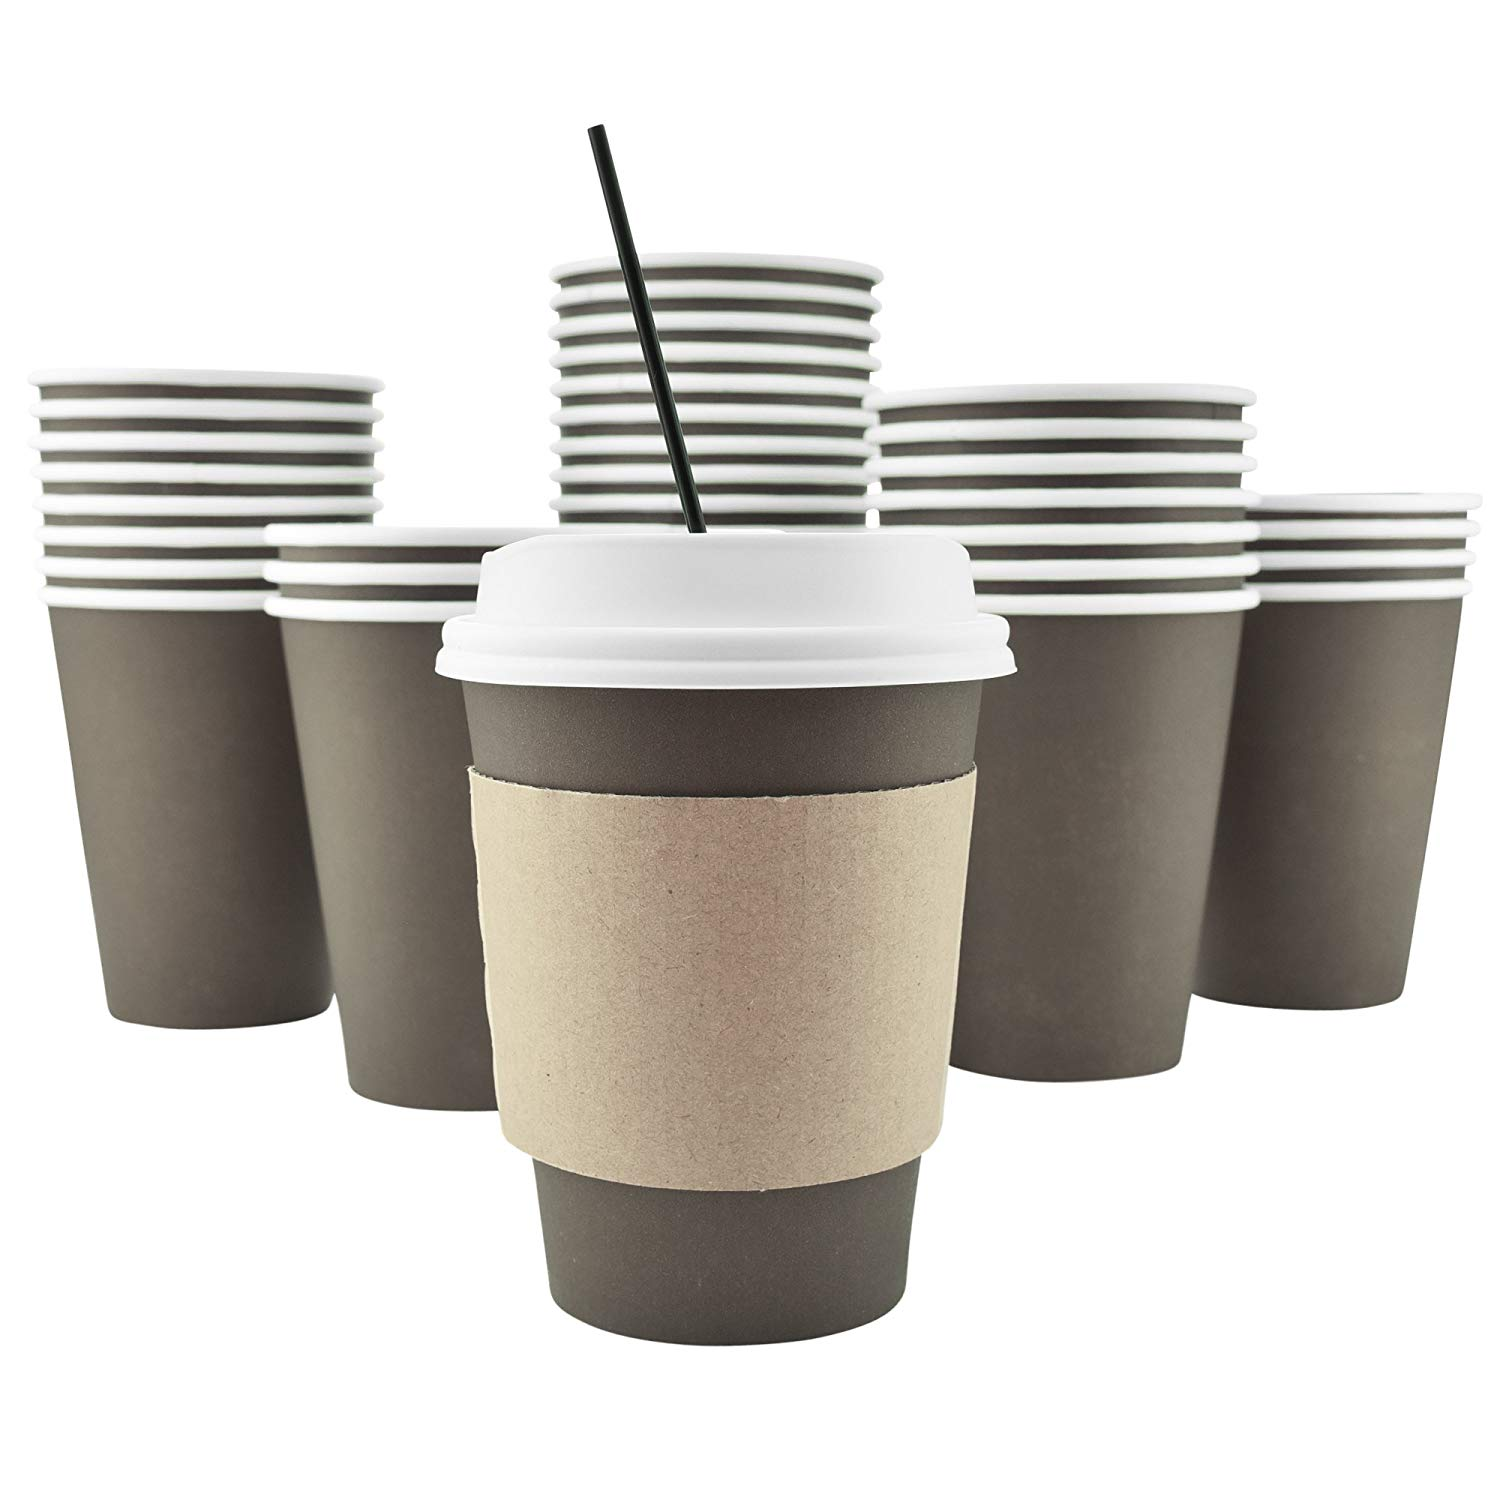 100 Pack 8 Oz [12, 16, 20 Available] Disposable Hot Paper Coffee Cups, Lids, Sleeves, Stirring Straws Mocha... by AckBrands LLC